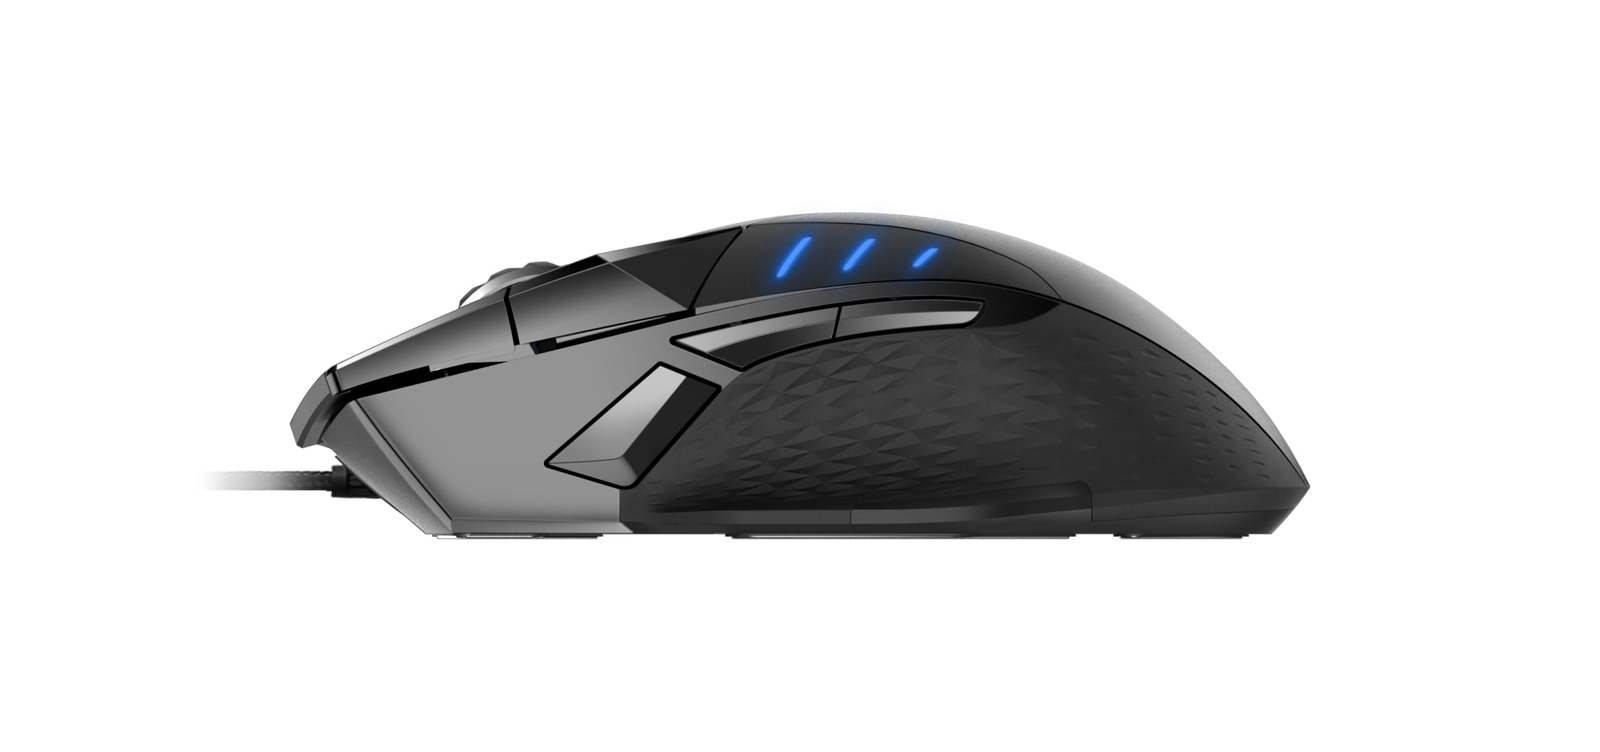 Rapoo VT300 Optical Gaming Mouse - Black image